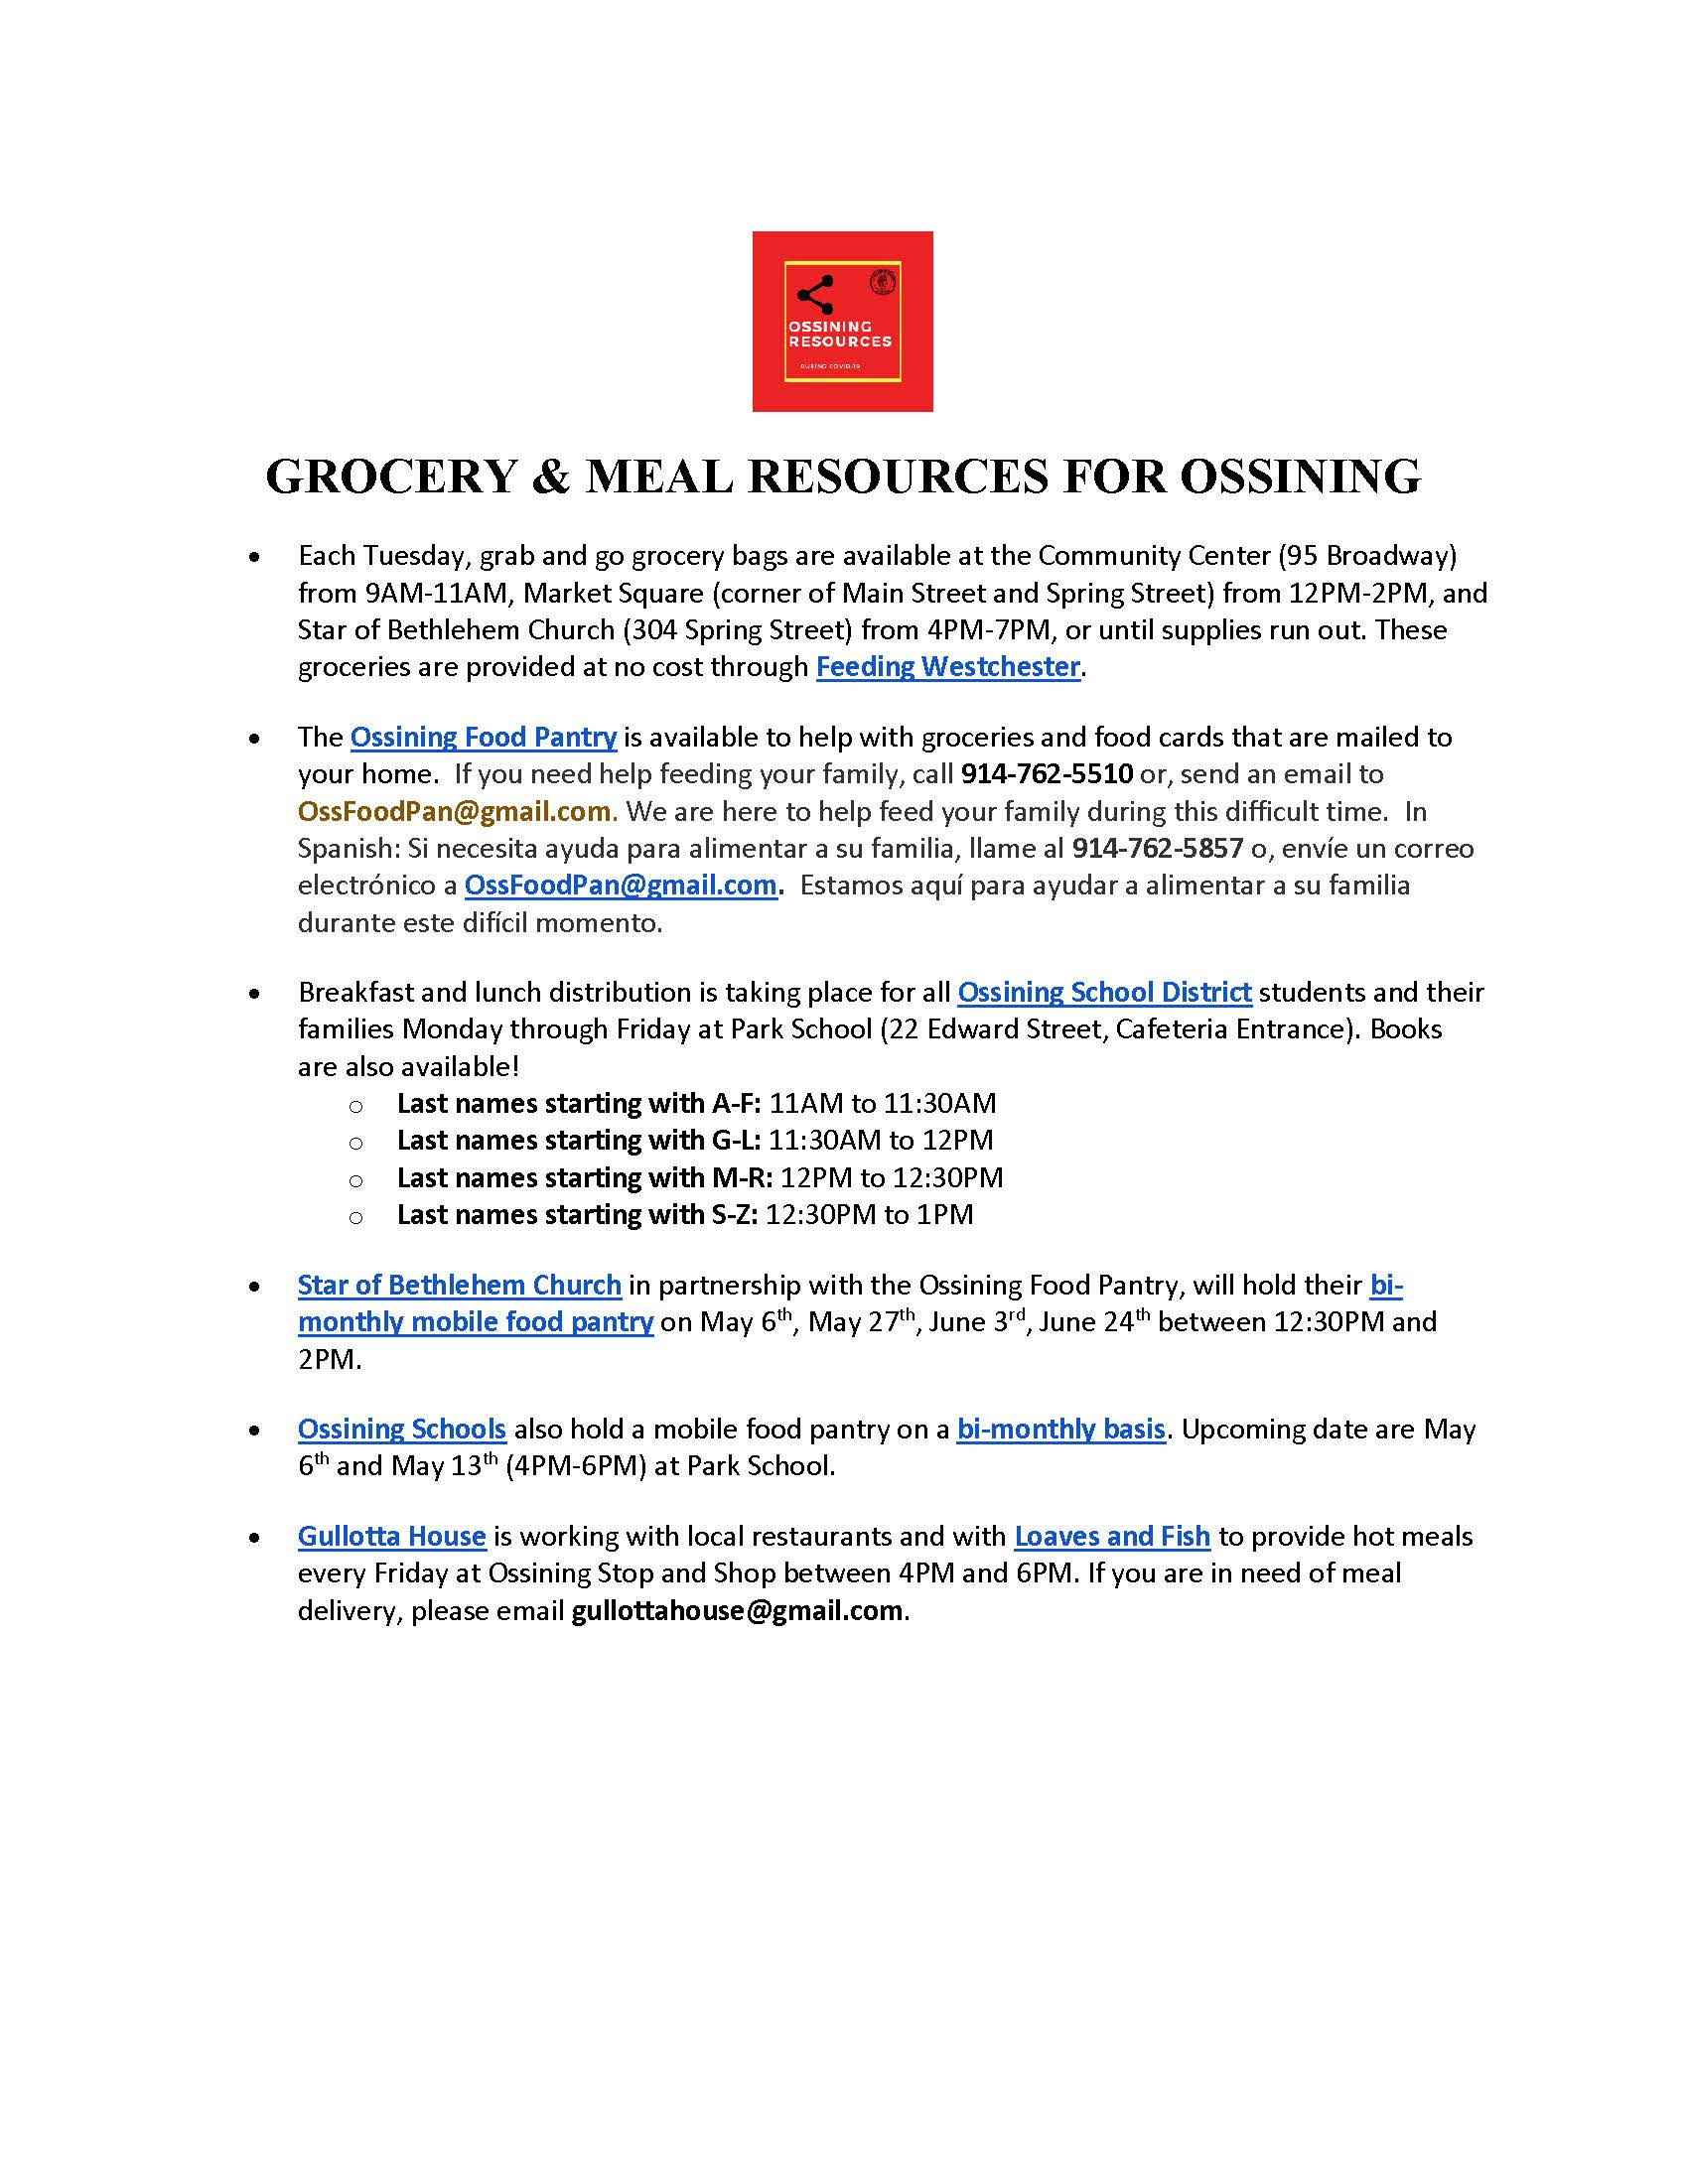 Grocery Hot Meal Resources in Ossining